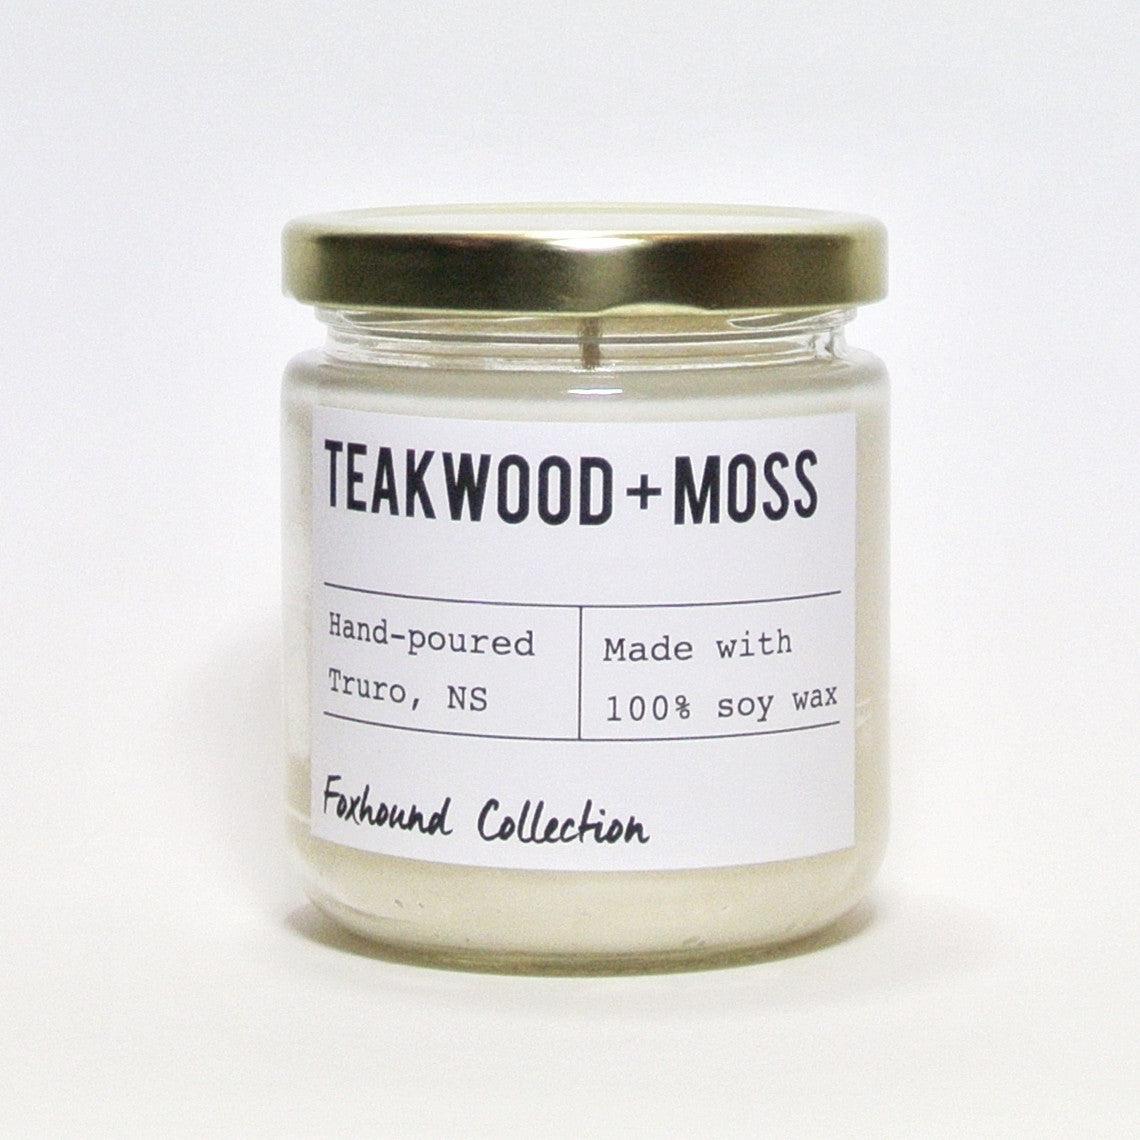 foxhound collection teakwood + moss soy candle